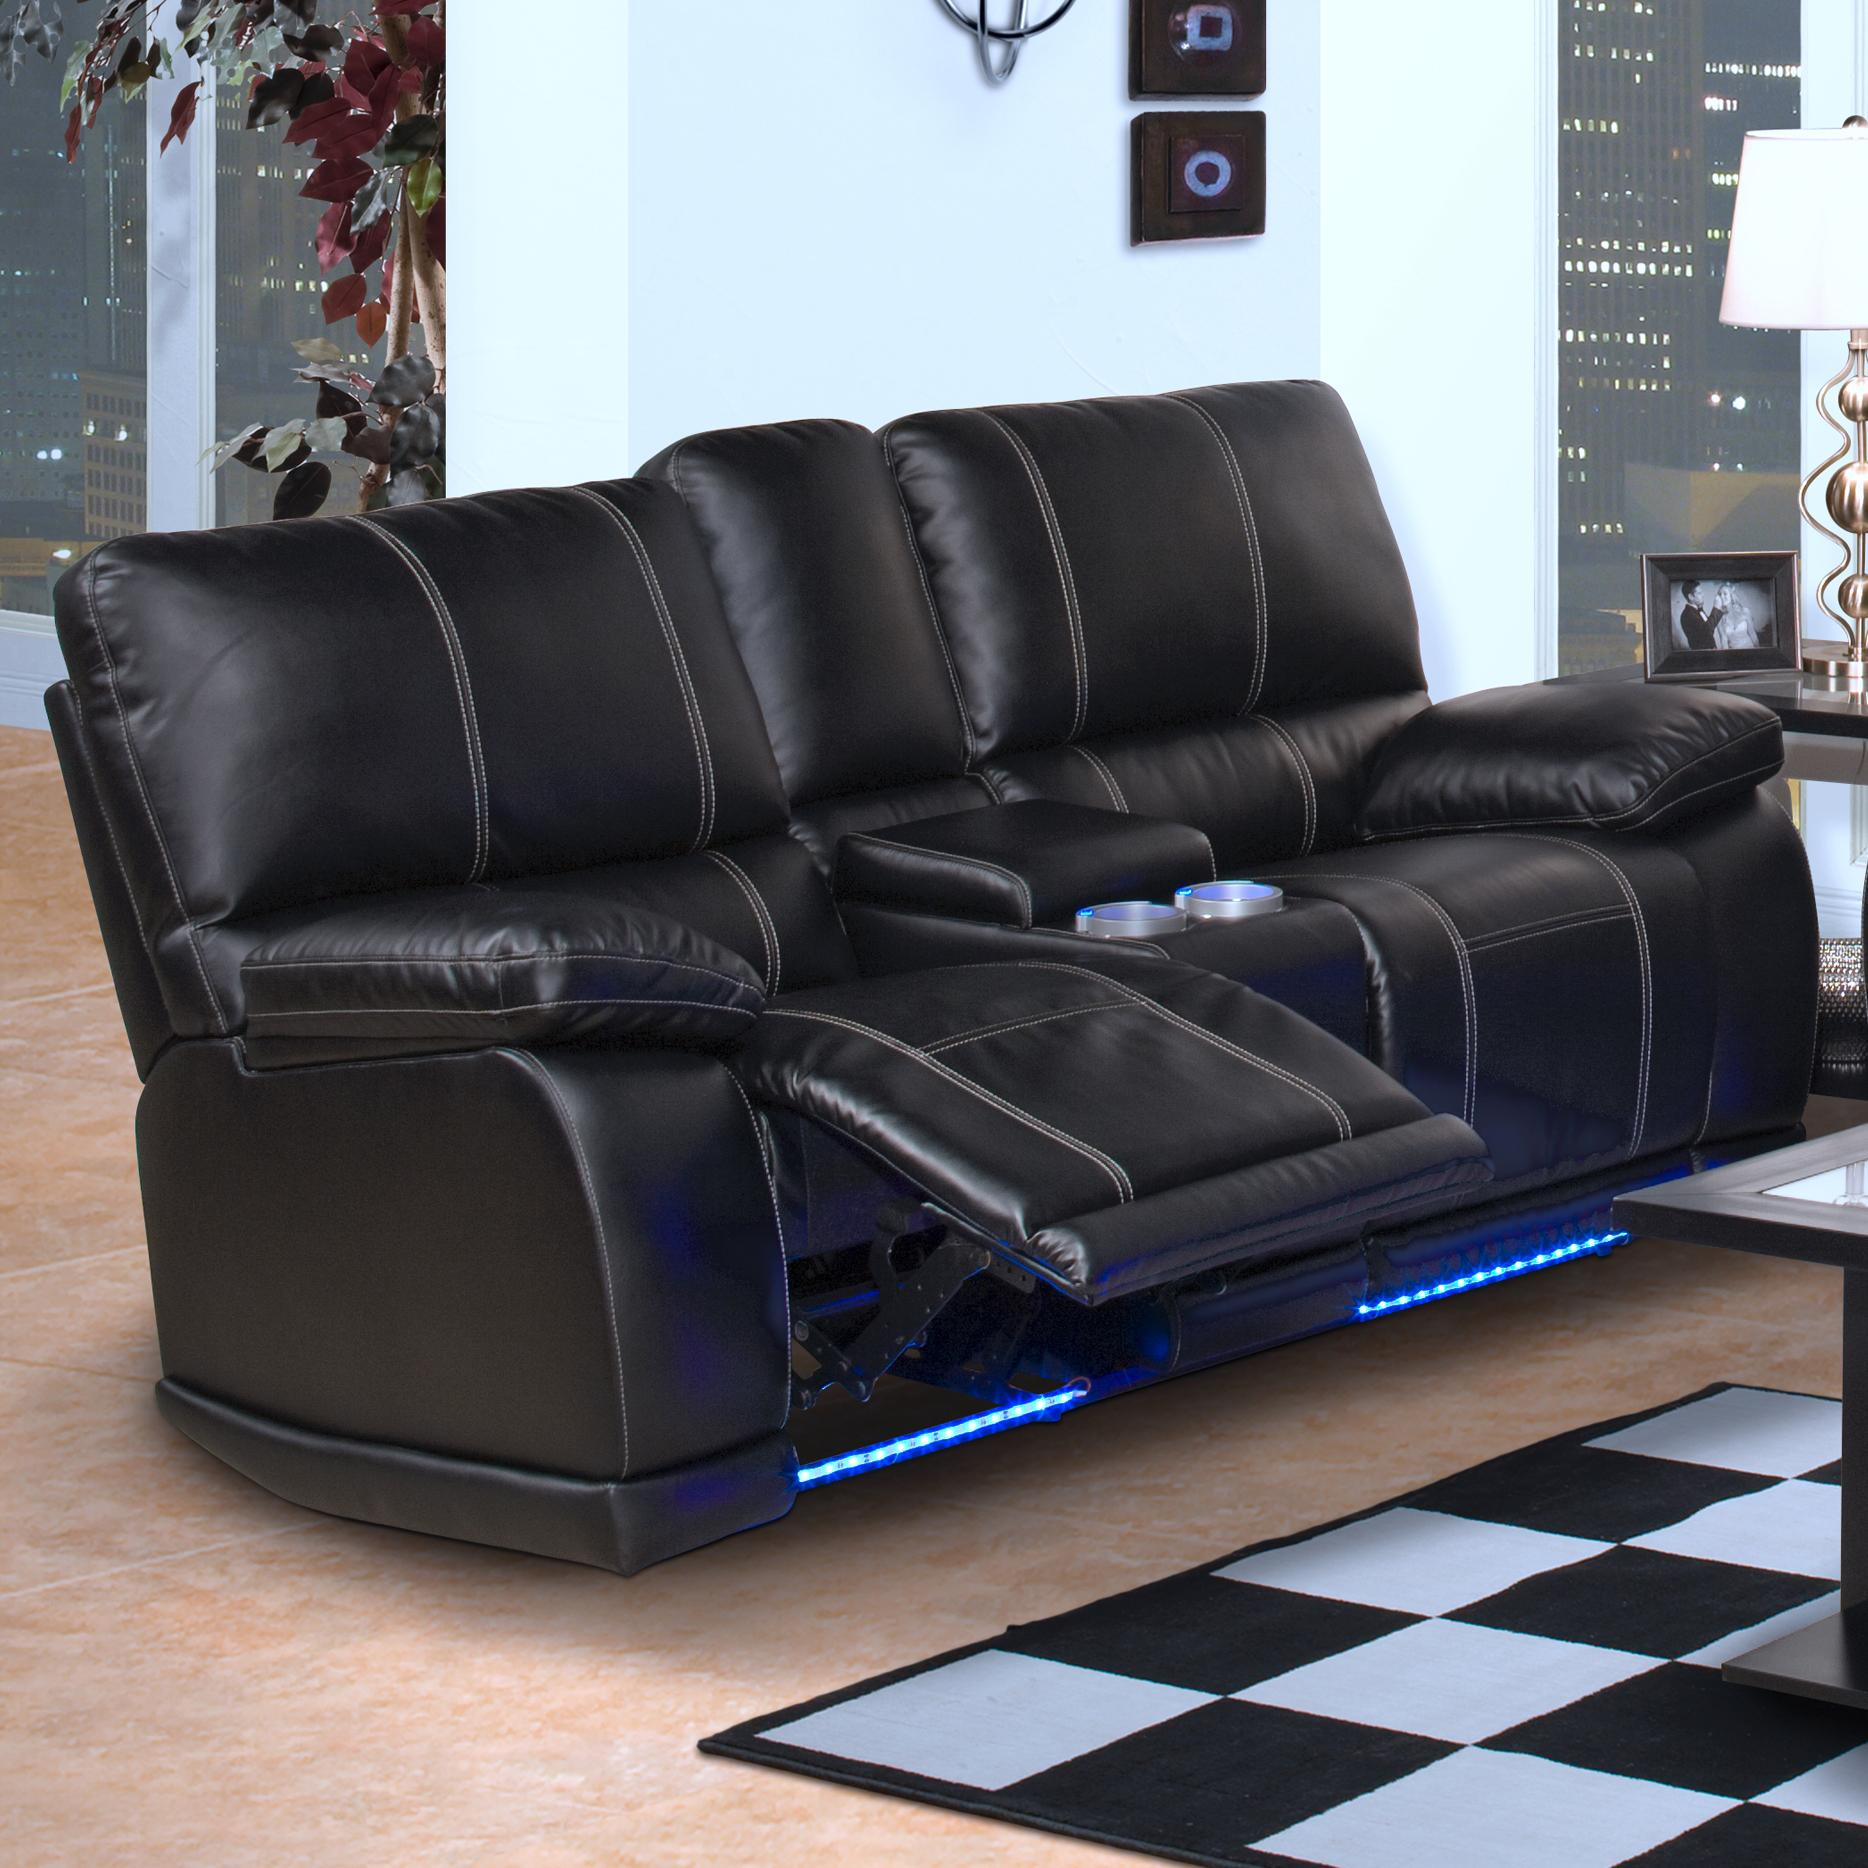 reclining club chair banana lounge new classic electra contemporary dual recliner console loveseat with cup holders and storage ...